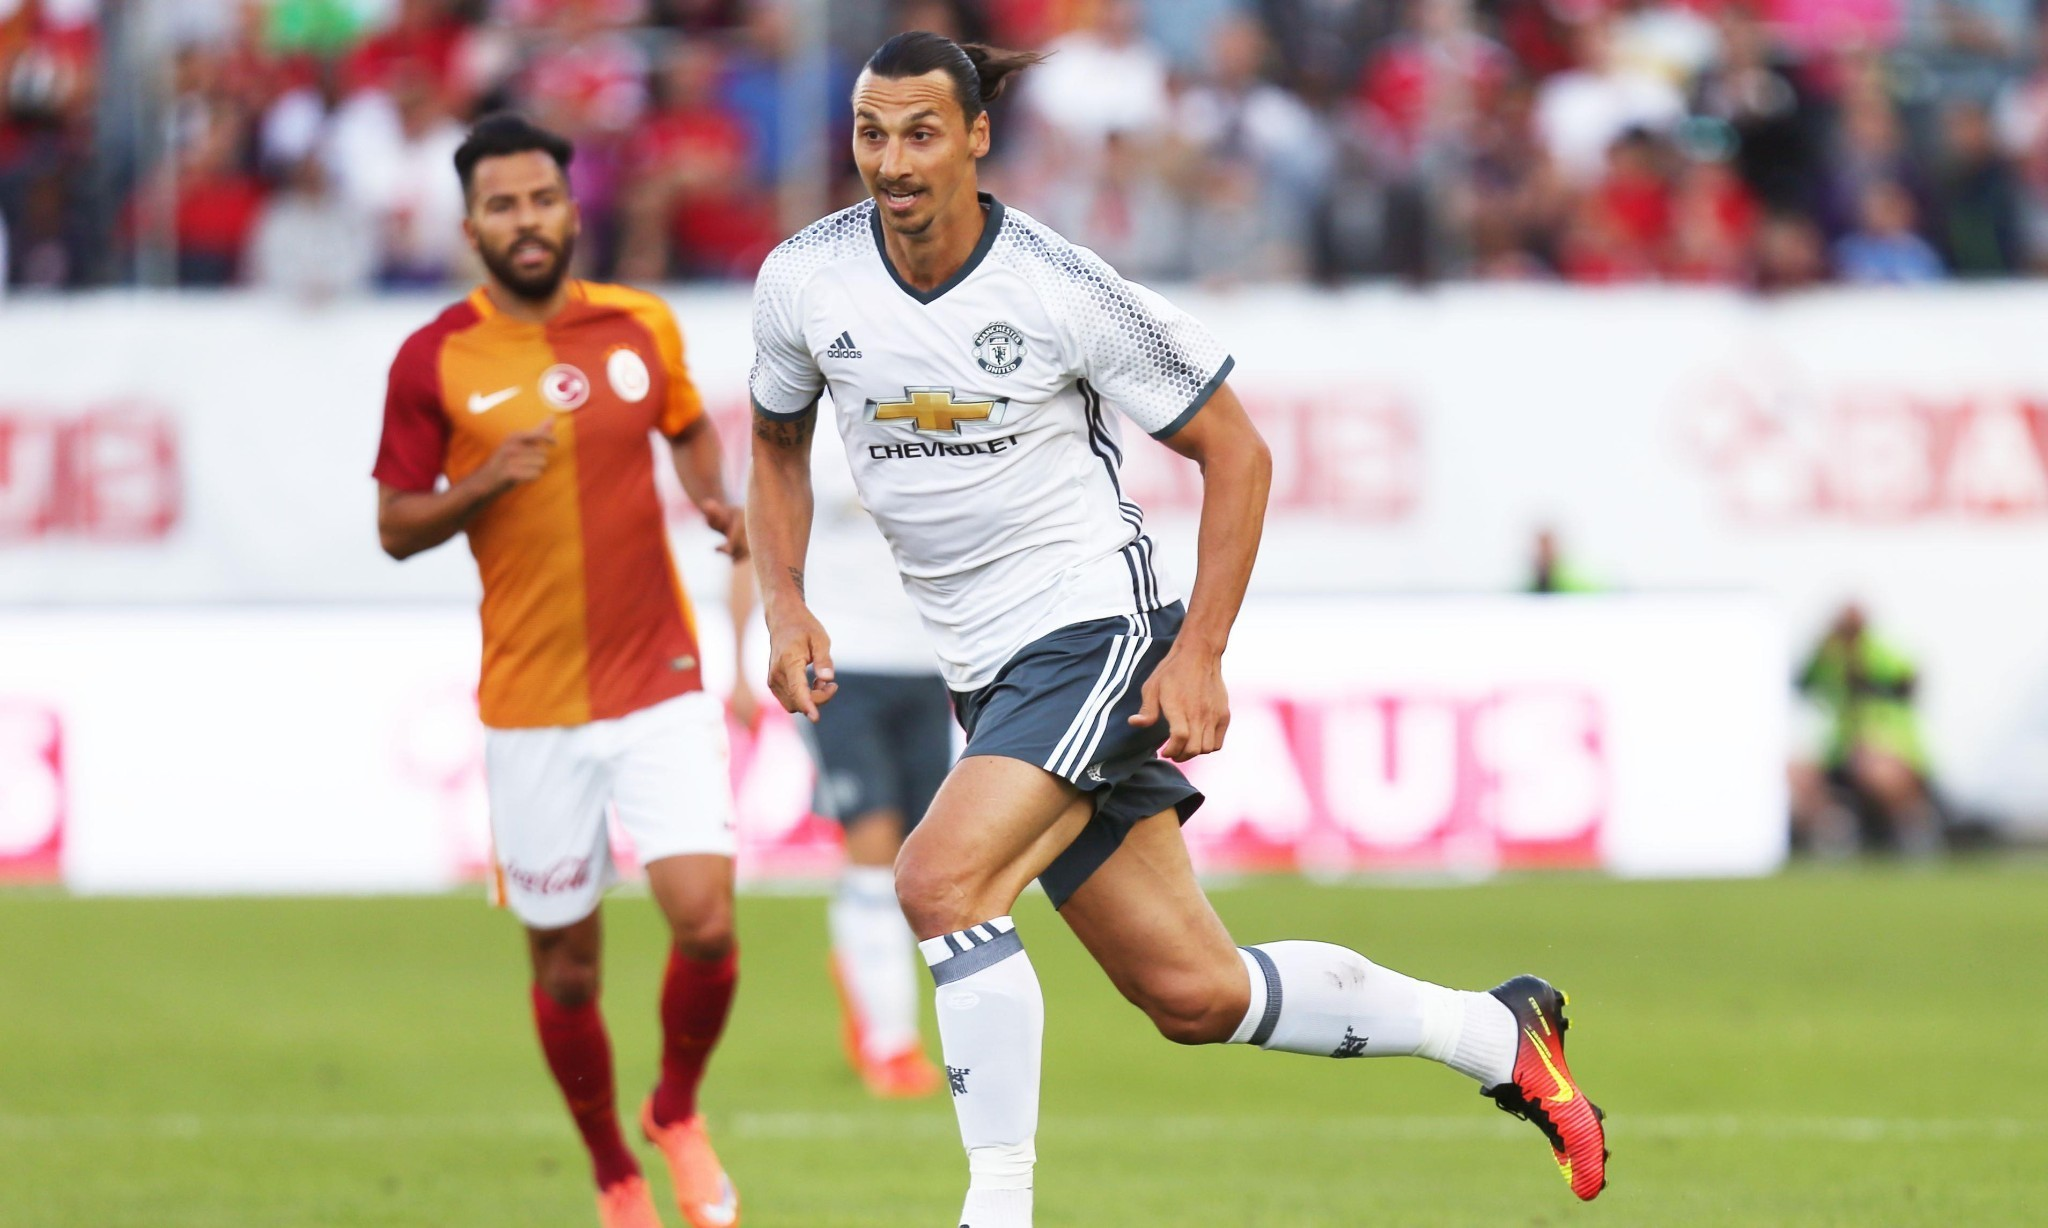 Zlatan Ibrahimovic is integrating well into Manchester United team